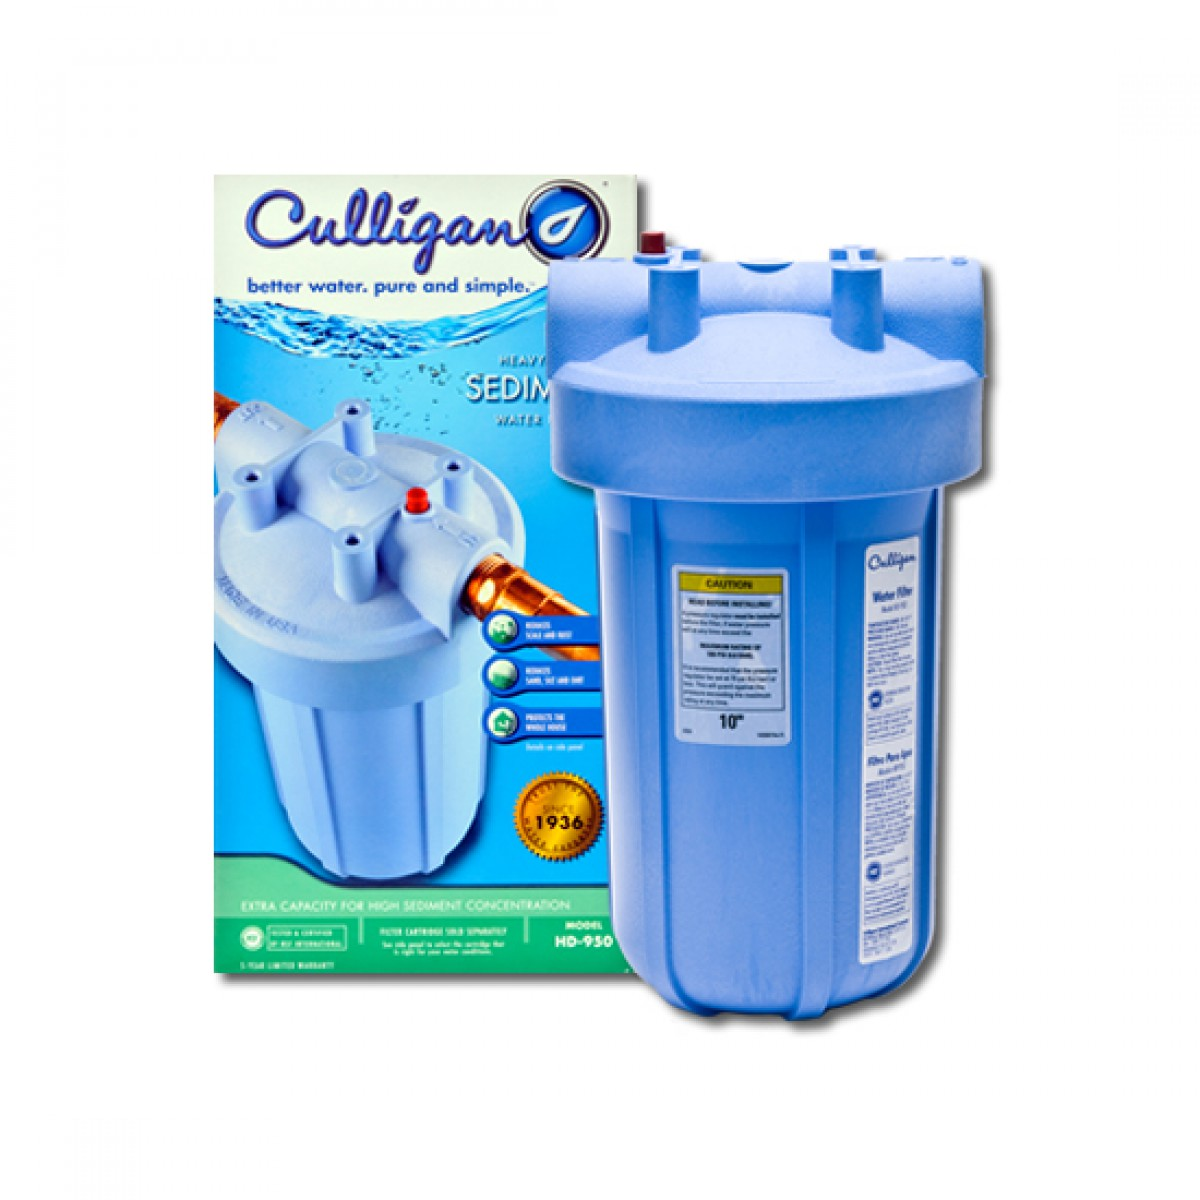 Hd 950 culligan whole house water filter for Water softener for 4 bedroom house